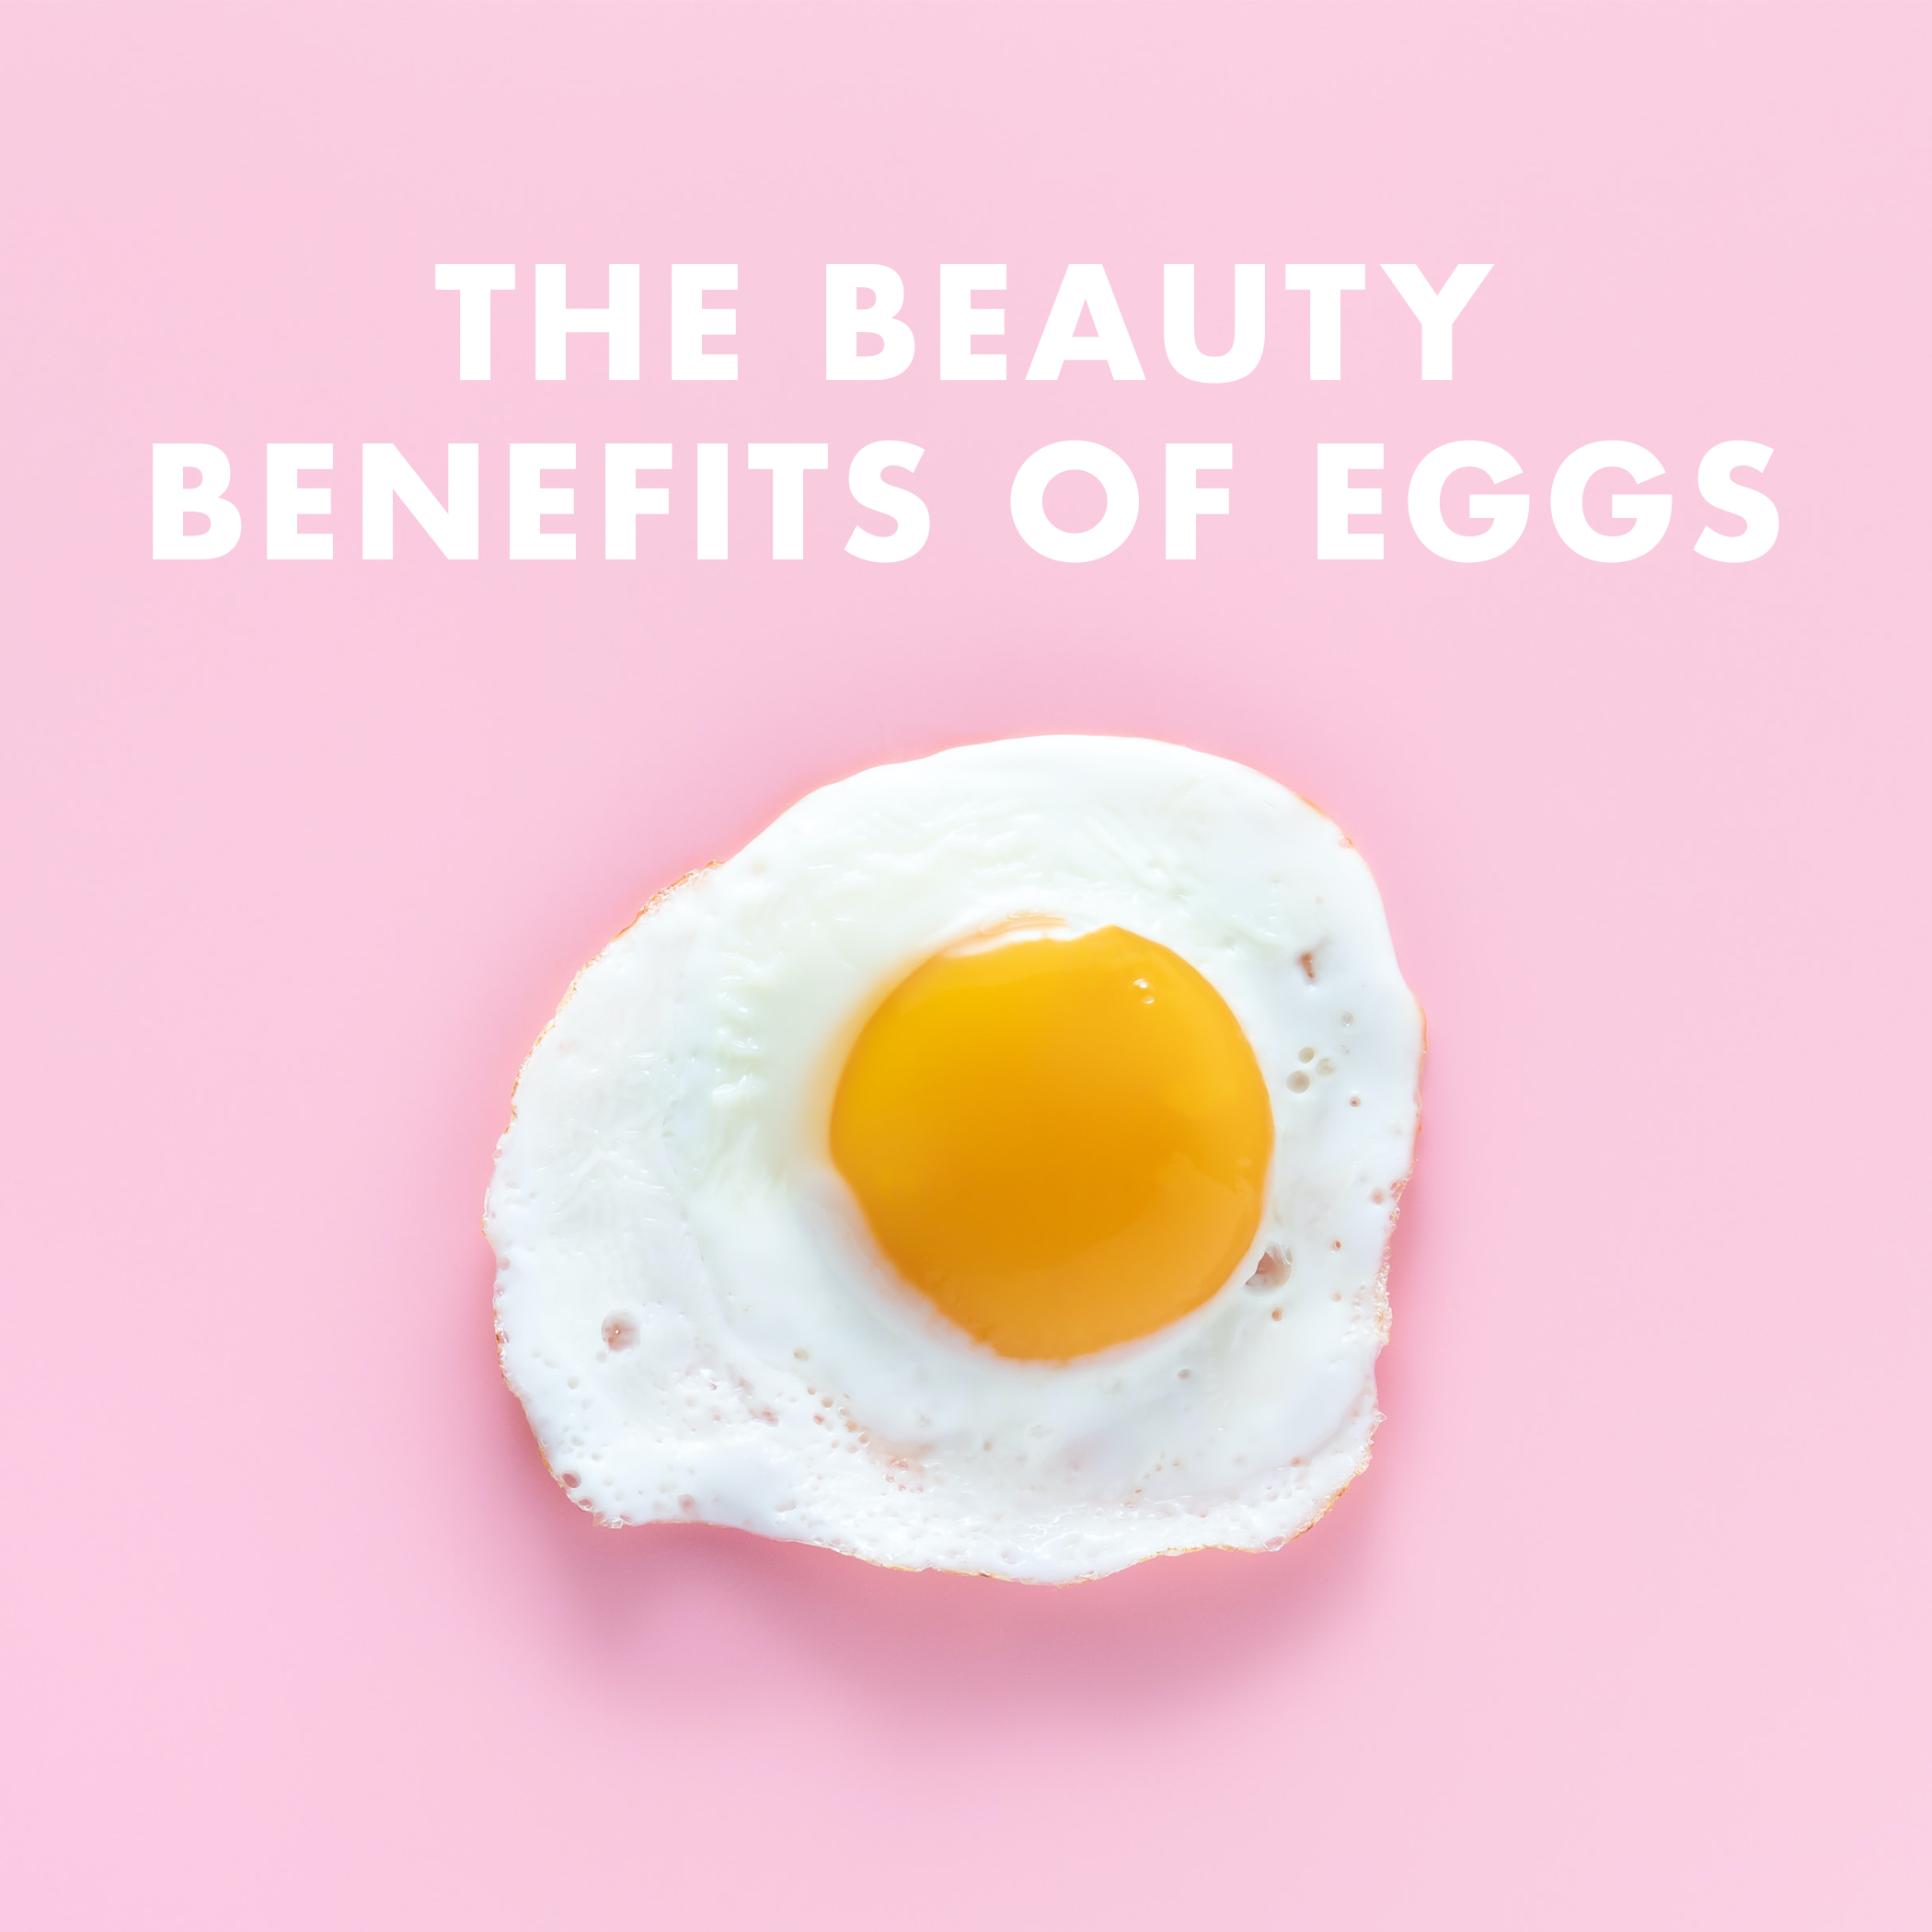 The Beauty Benefits of Eggs